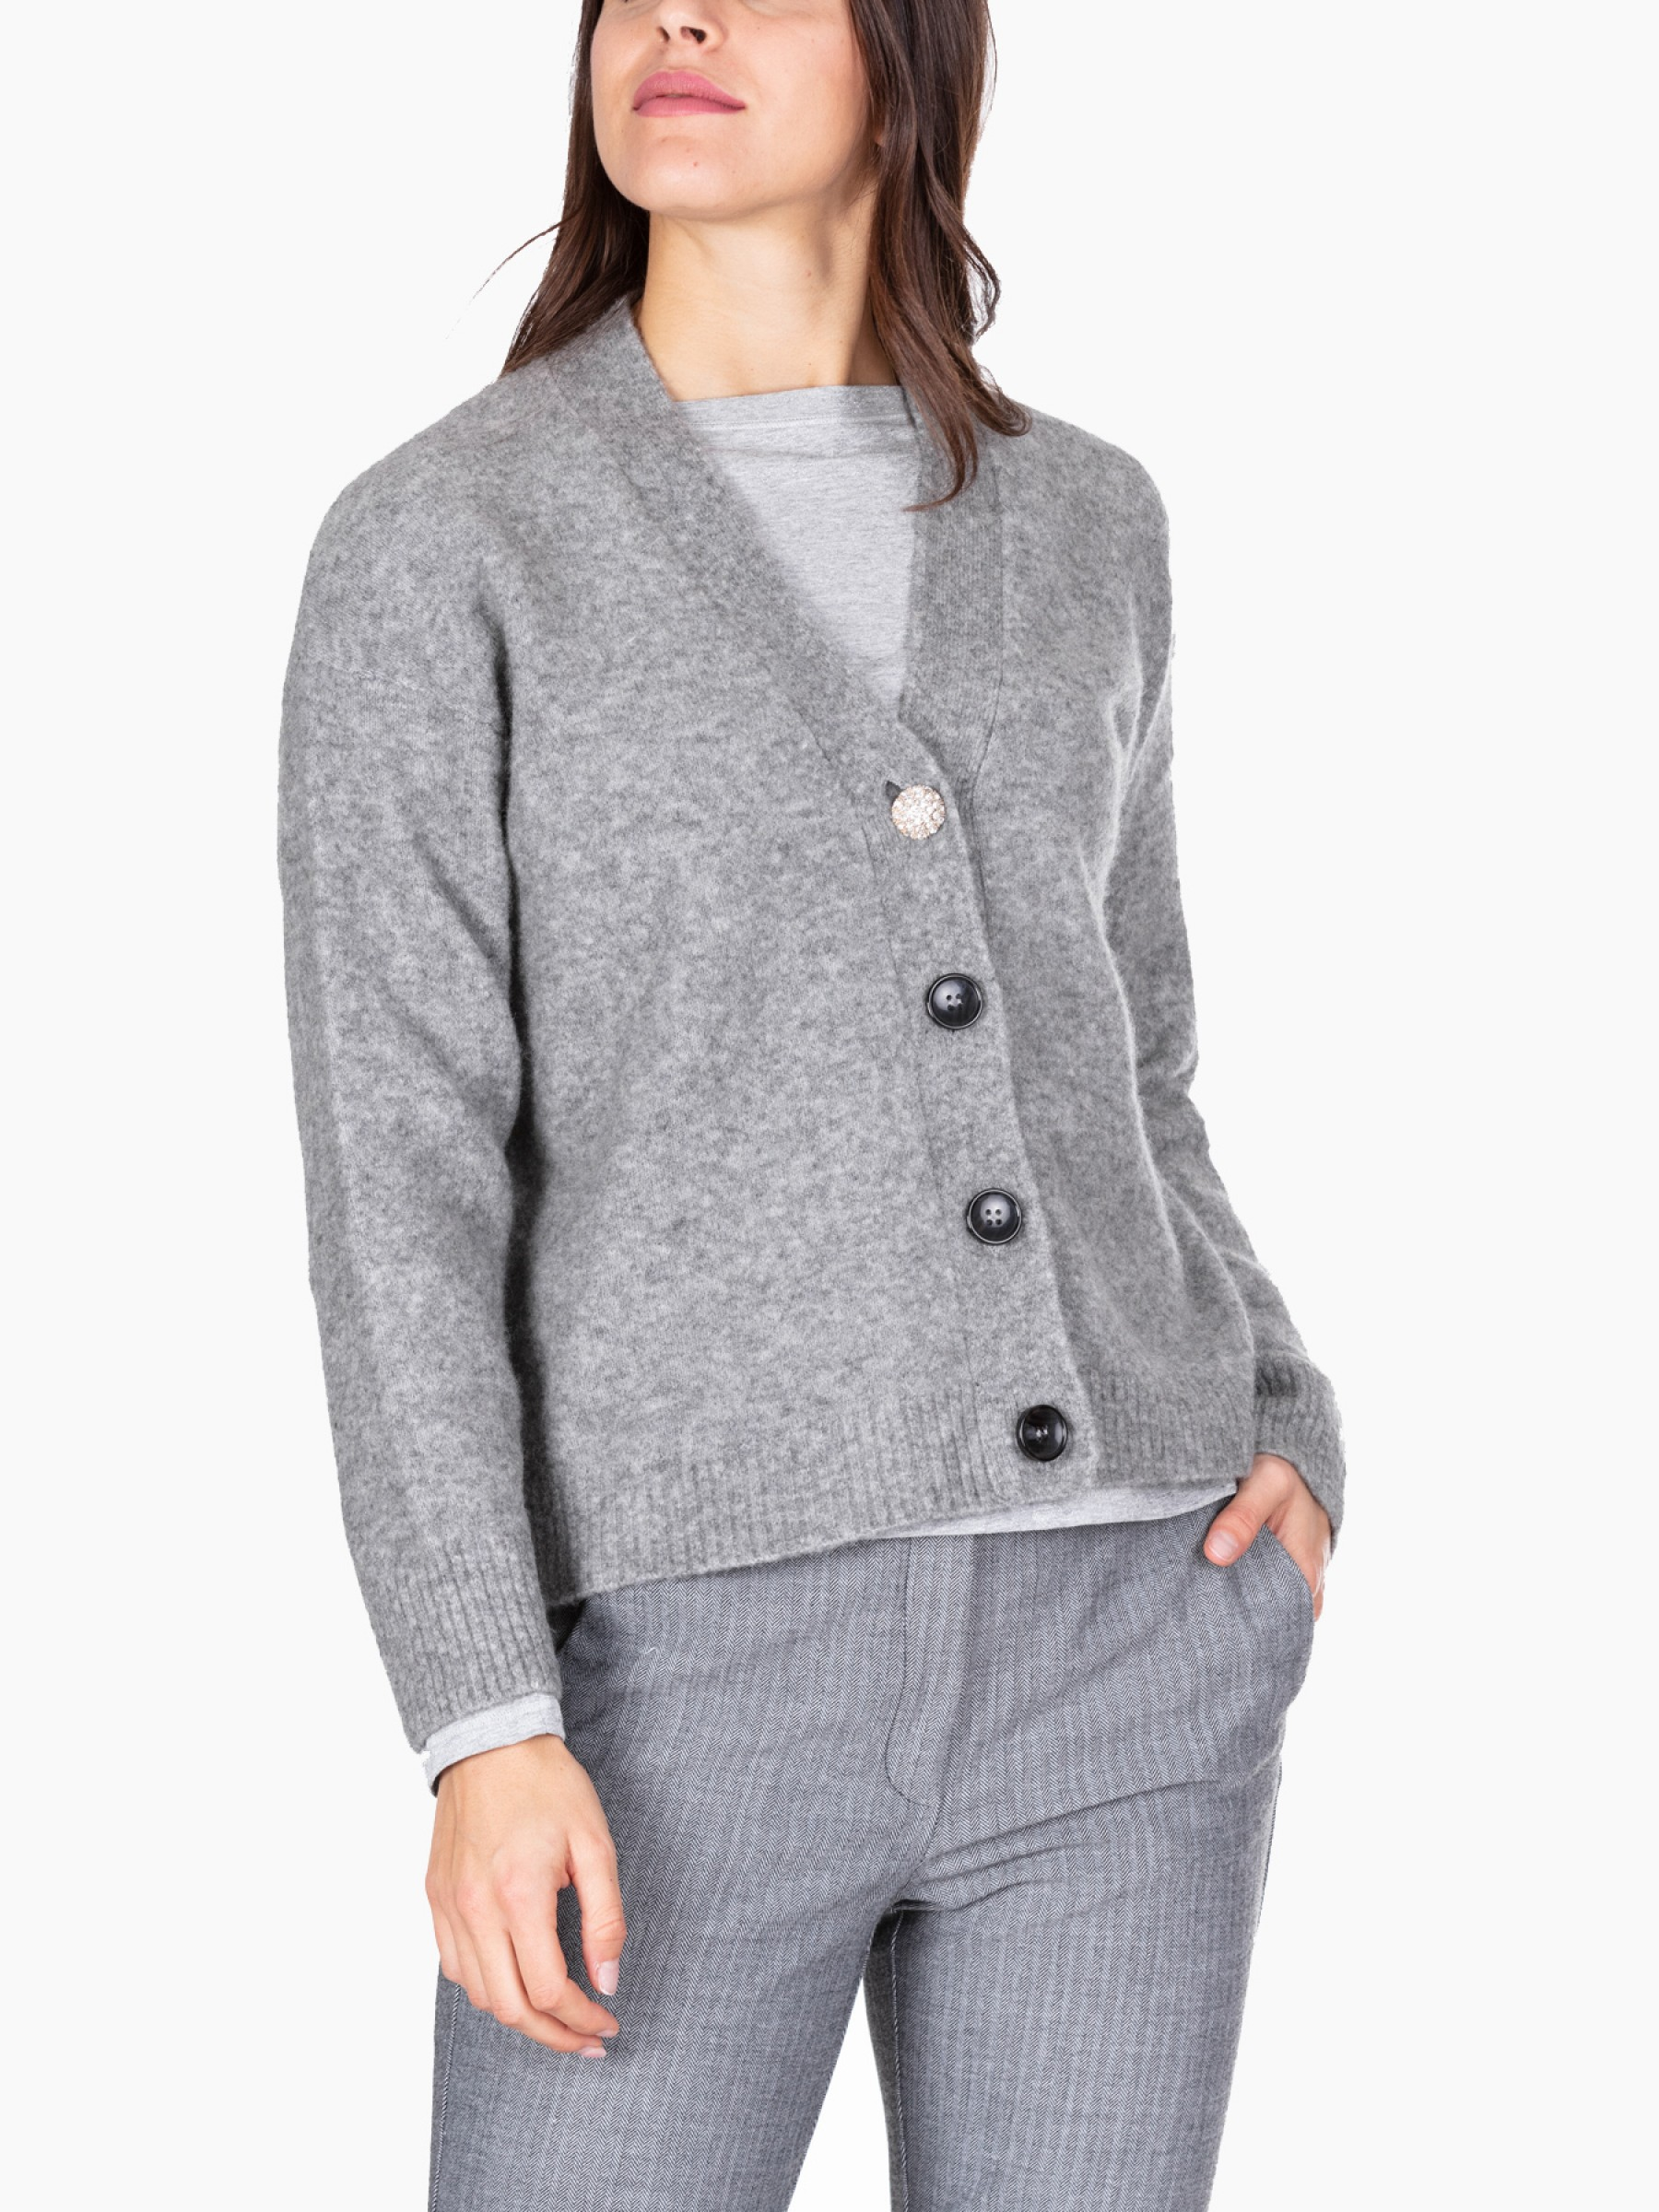 Kaos Cardigan in lana stretch AI2020 MI1NT074-0007-GRIGIO